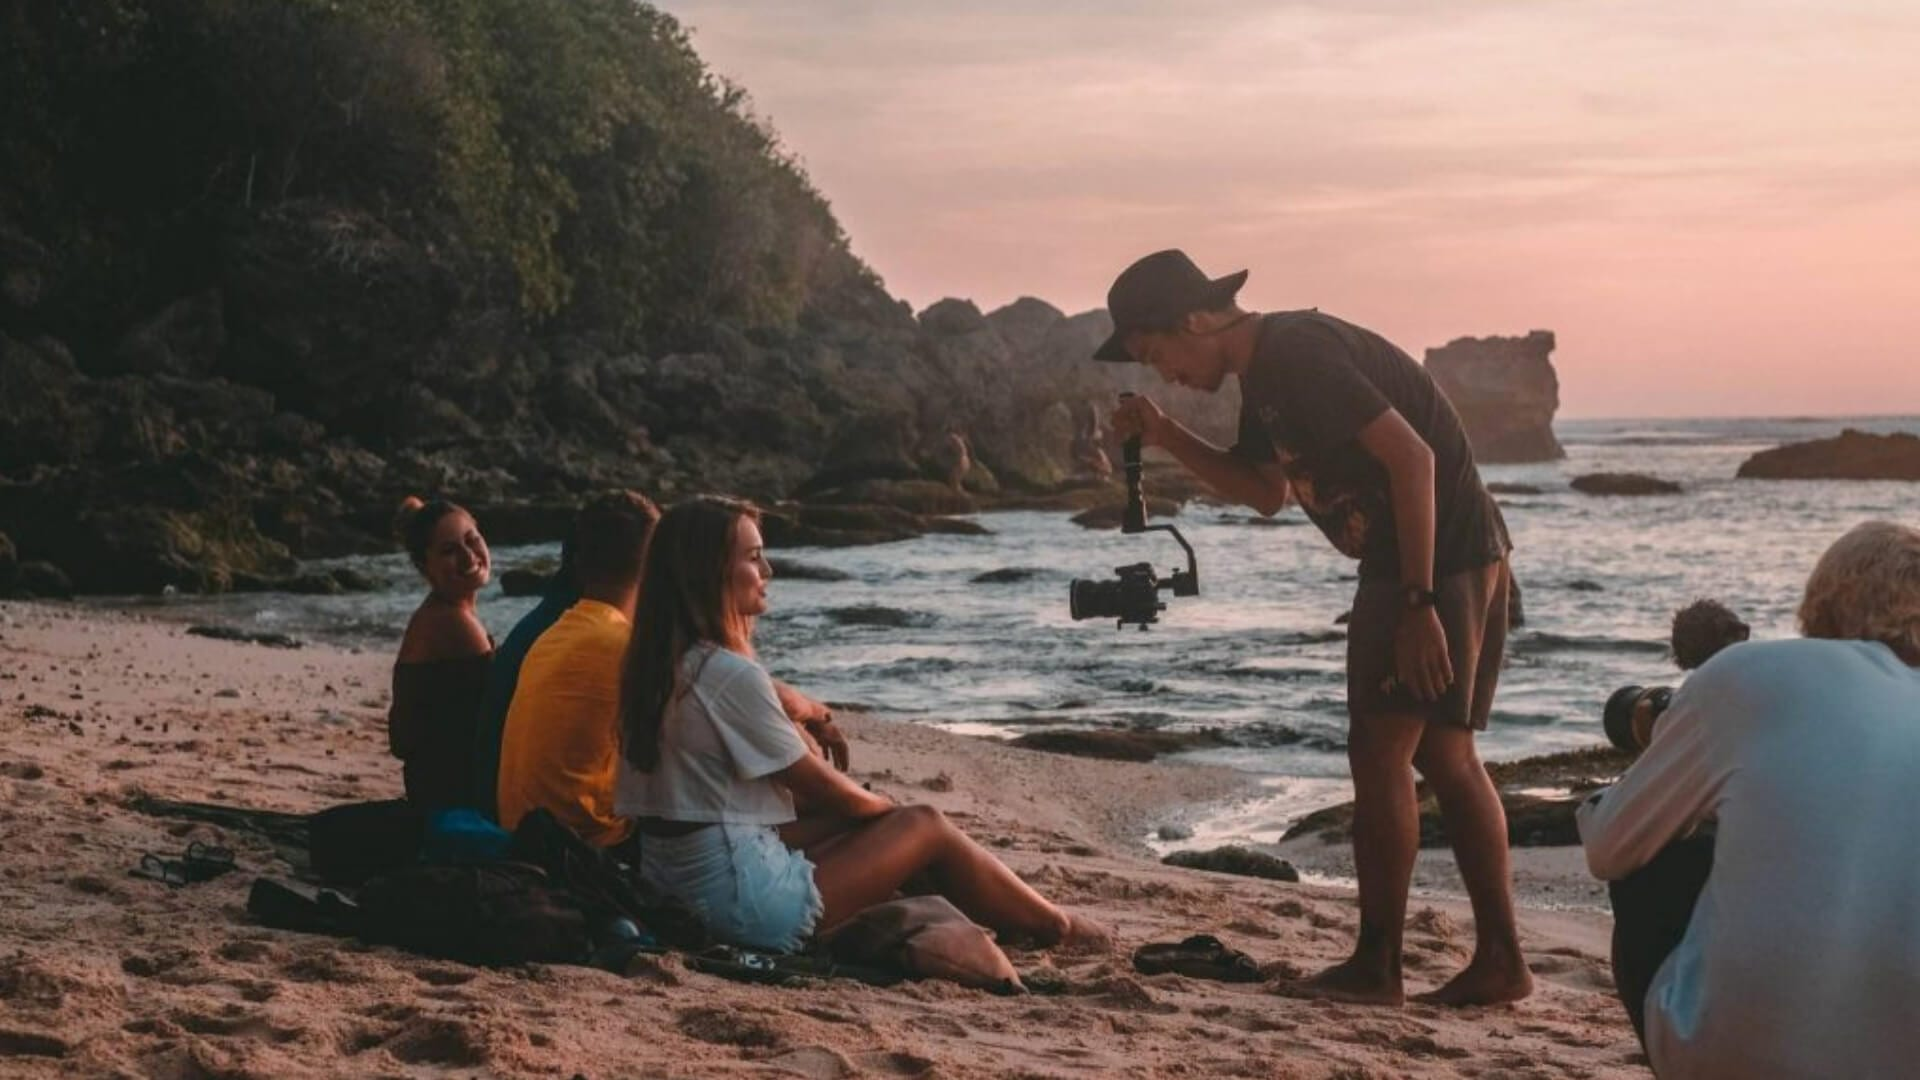 Three girls are sitting on a beach while two men are filming them during sunset in Bali.